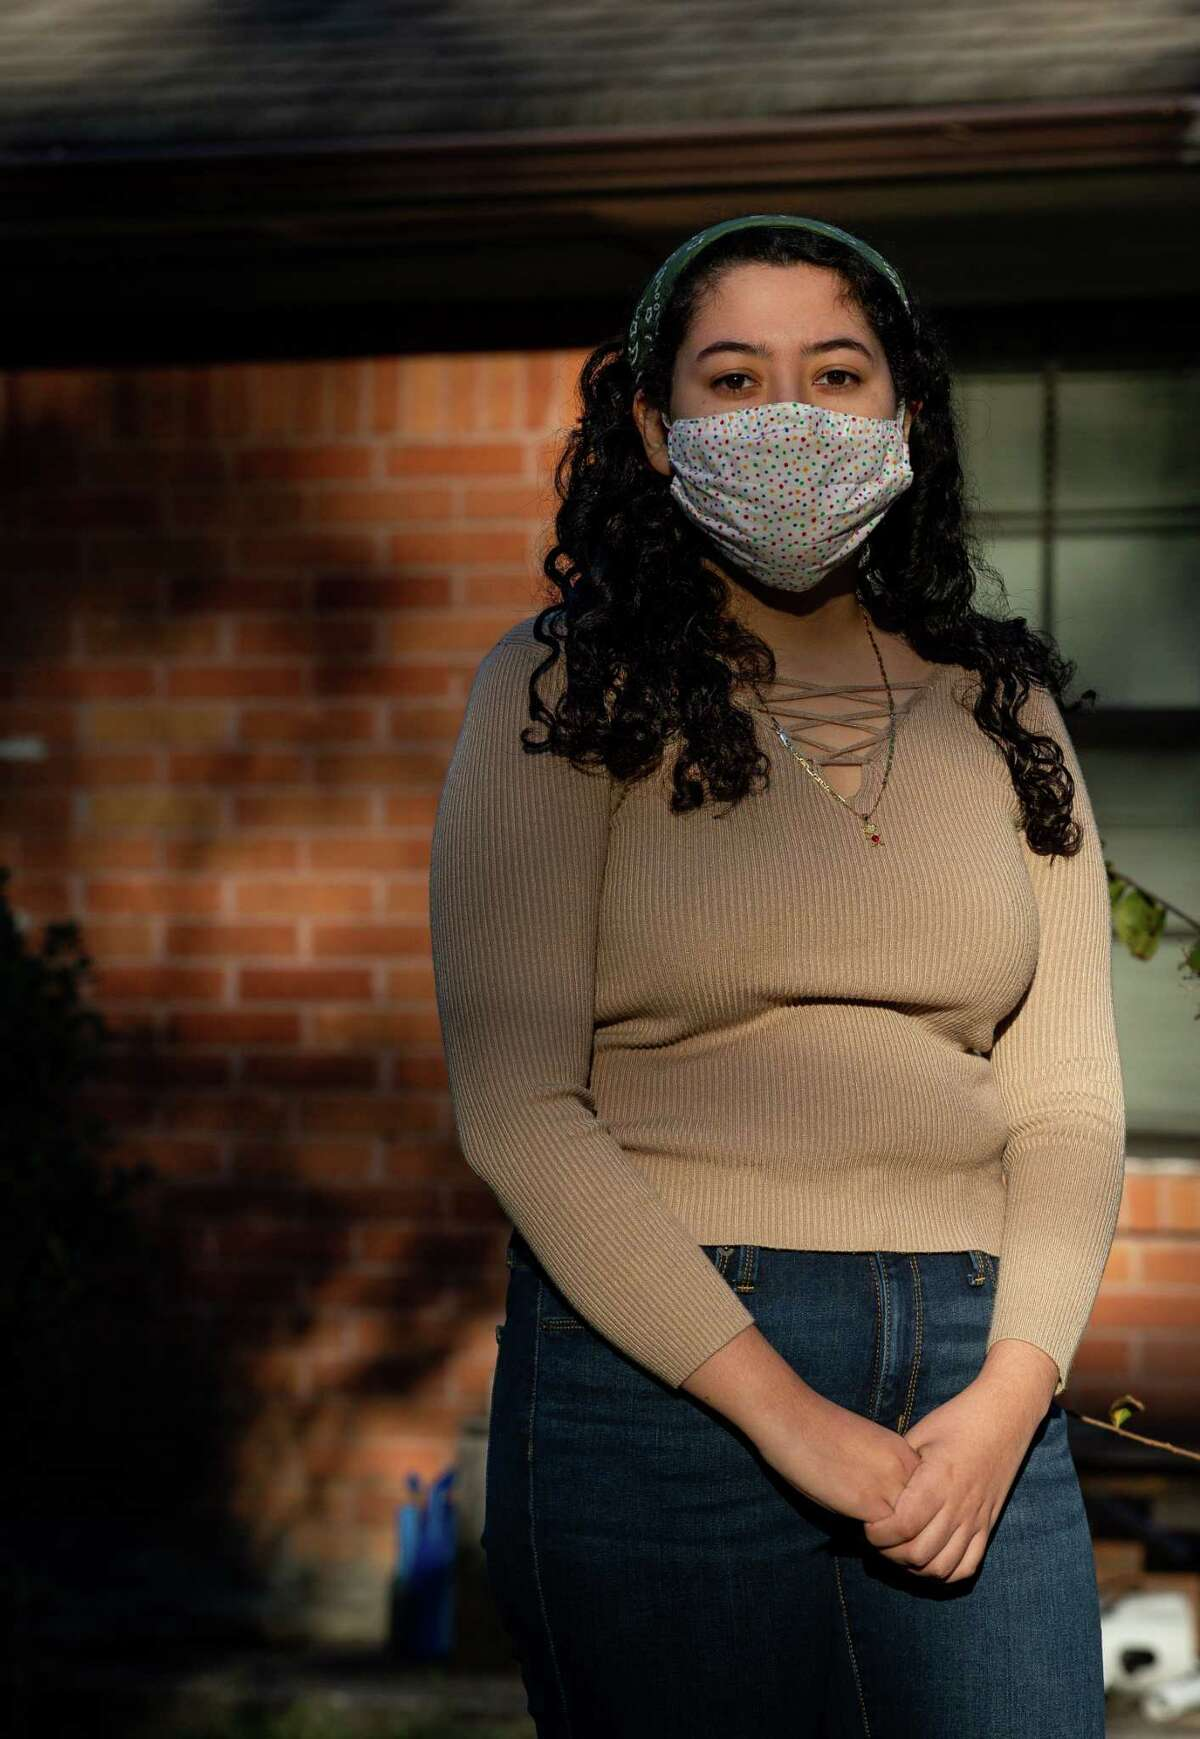 Michelle Ramirez, 18, who voted for the first time, poses for a photograph at her house Friday, Oct. 30, 2020, in Houston. Young voters are turning out in big numbers to help Latinos capture their largest-ever share of the Harris County electorate.